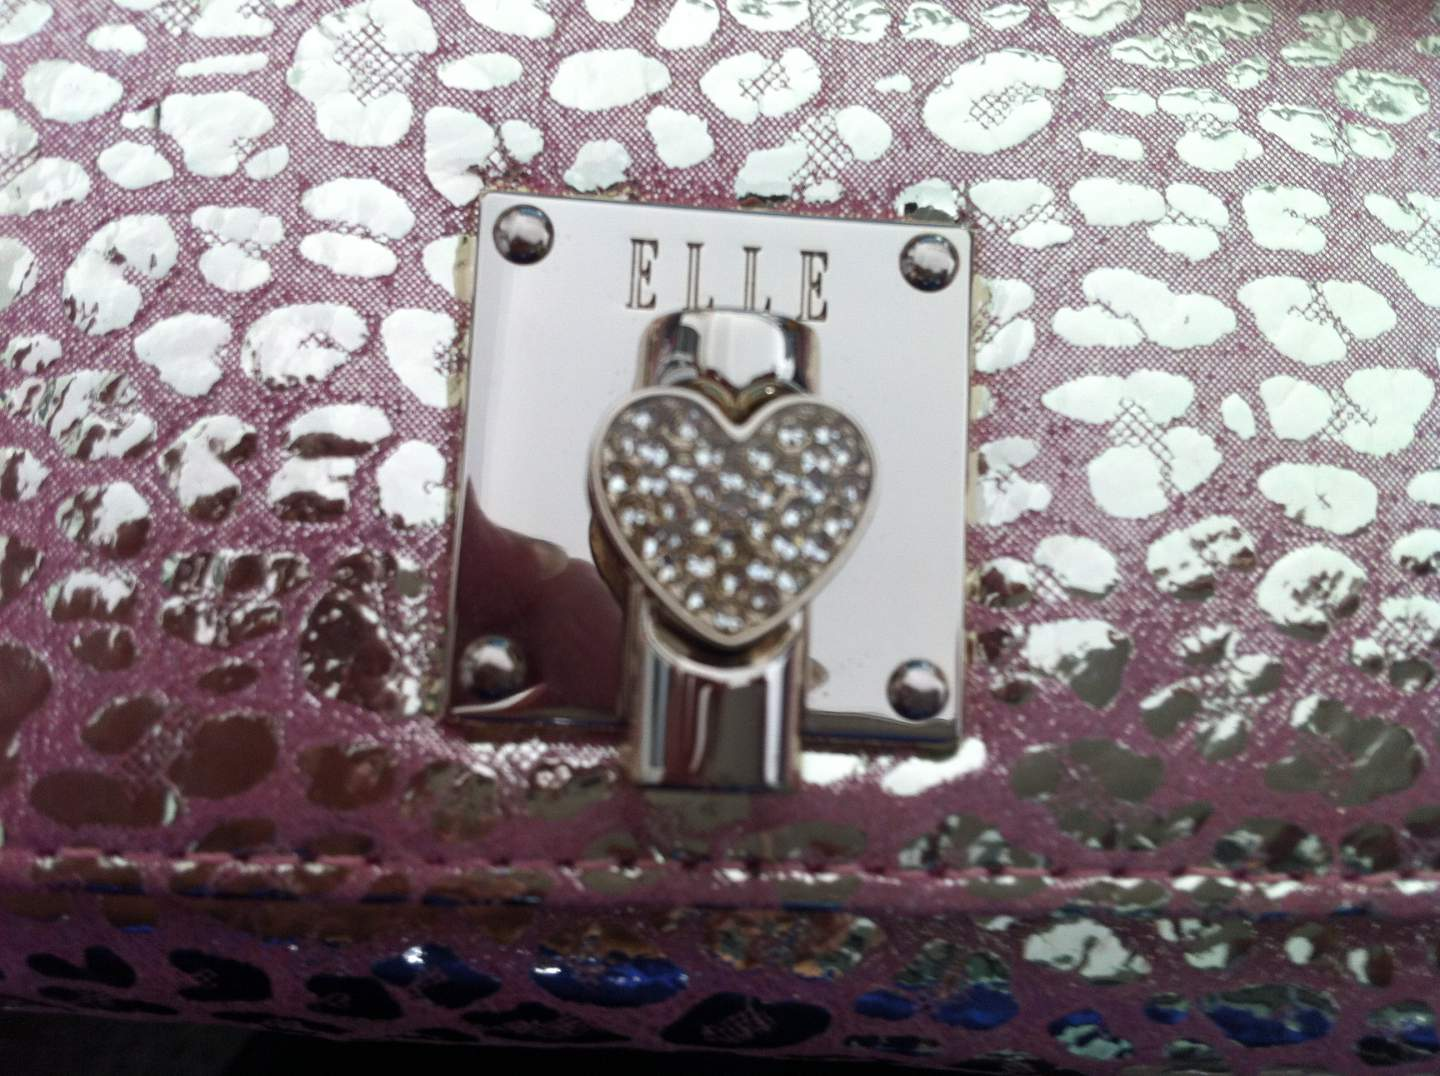 chrome hearts ring for sale 00269787 wholesale